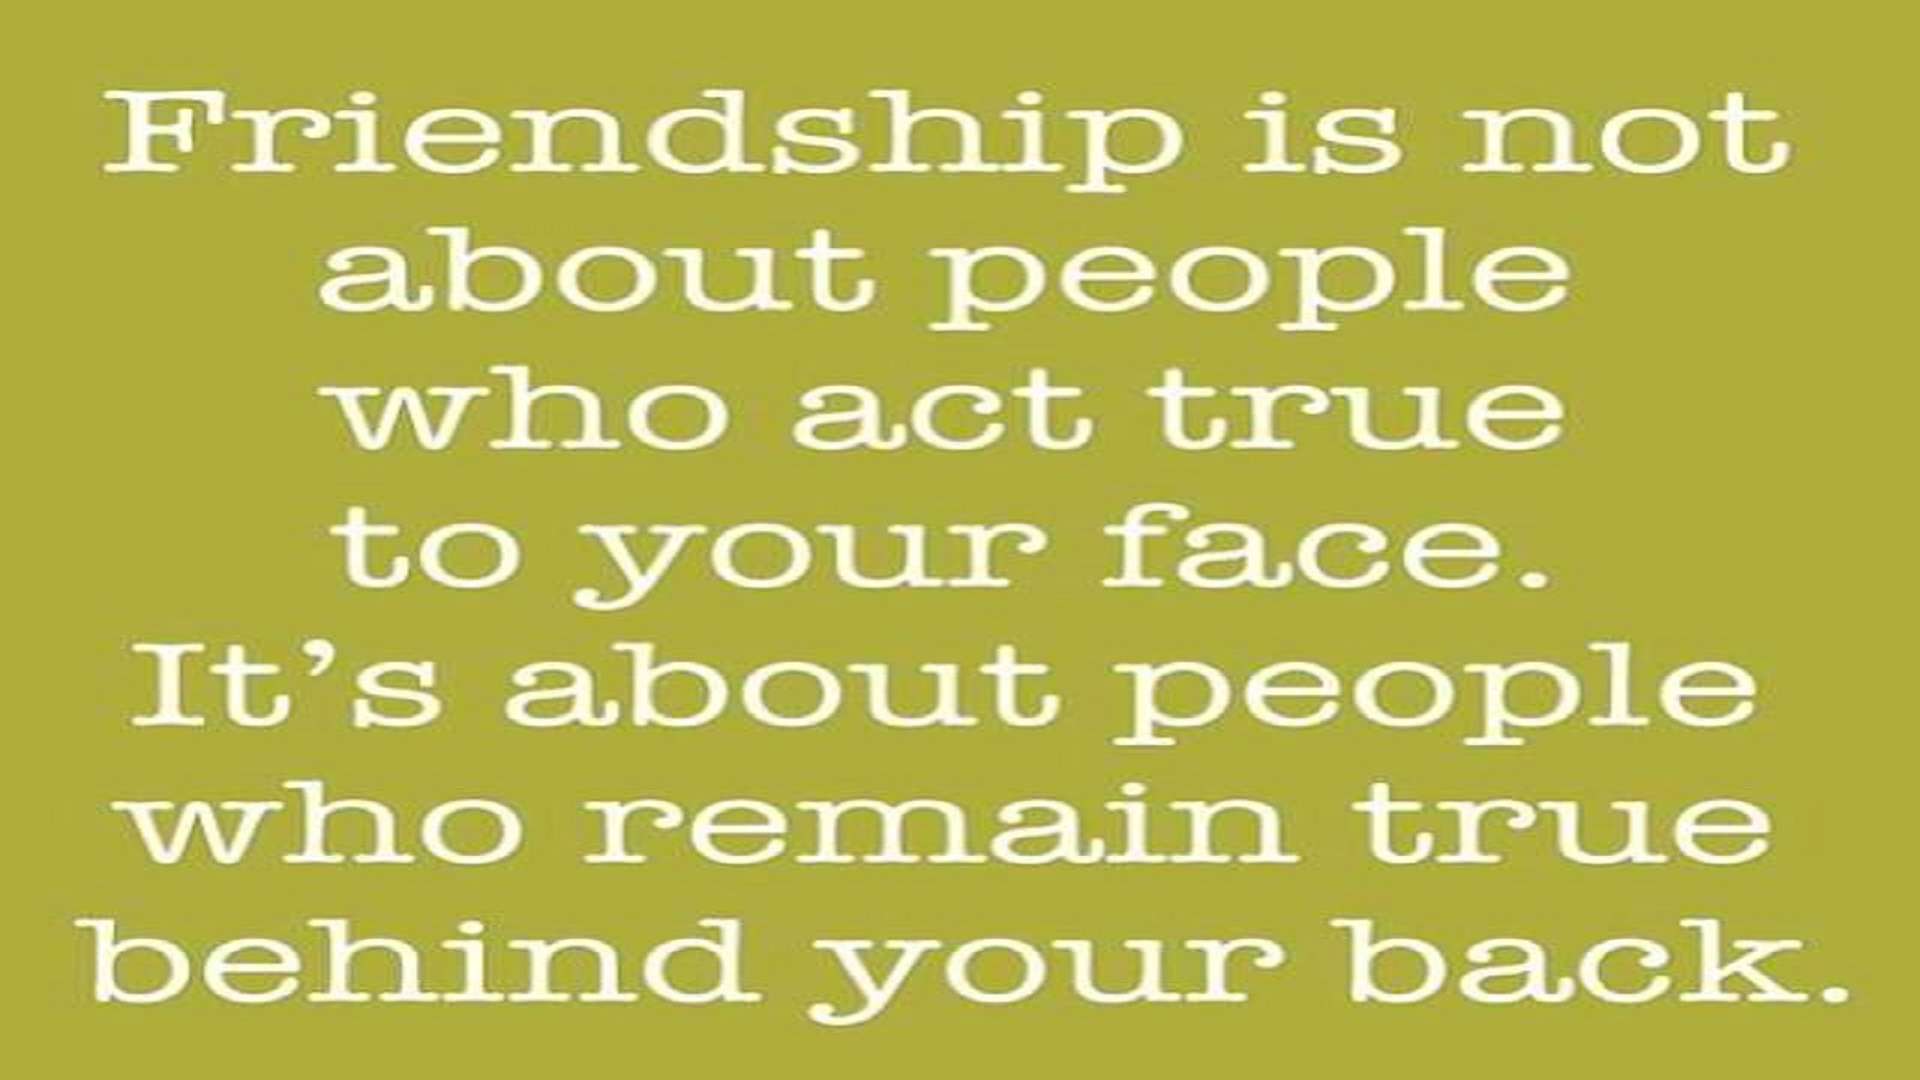 Quotes About Friendship Pictures Bestandfunnyfriendshipquotefreehdwallpapers  Hd Wallpaper